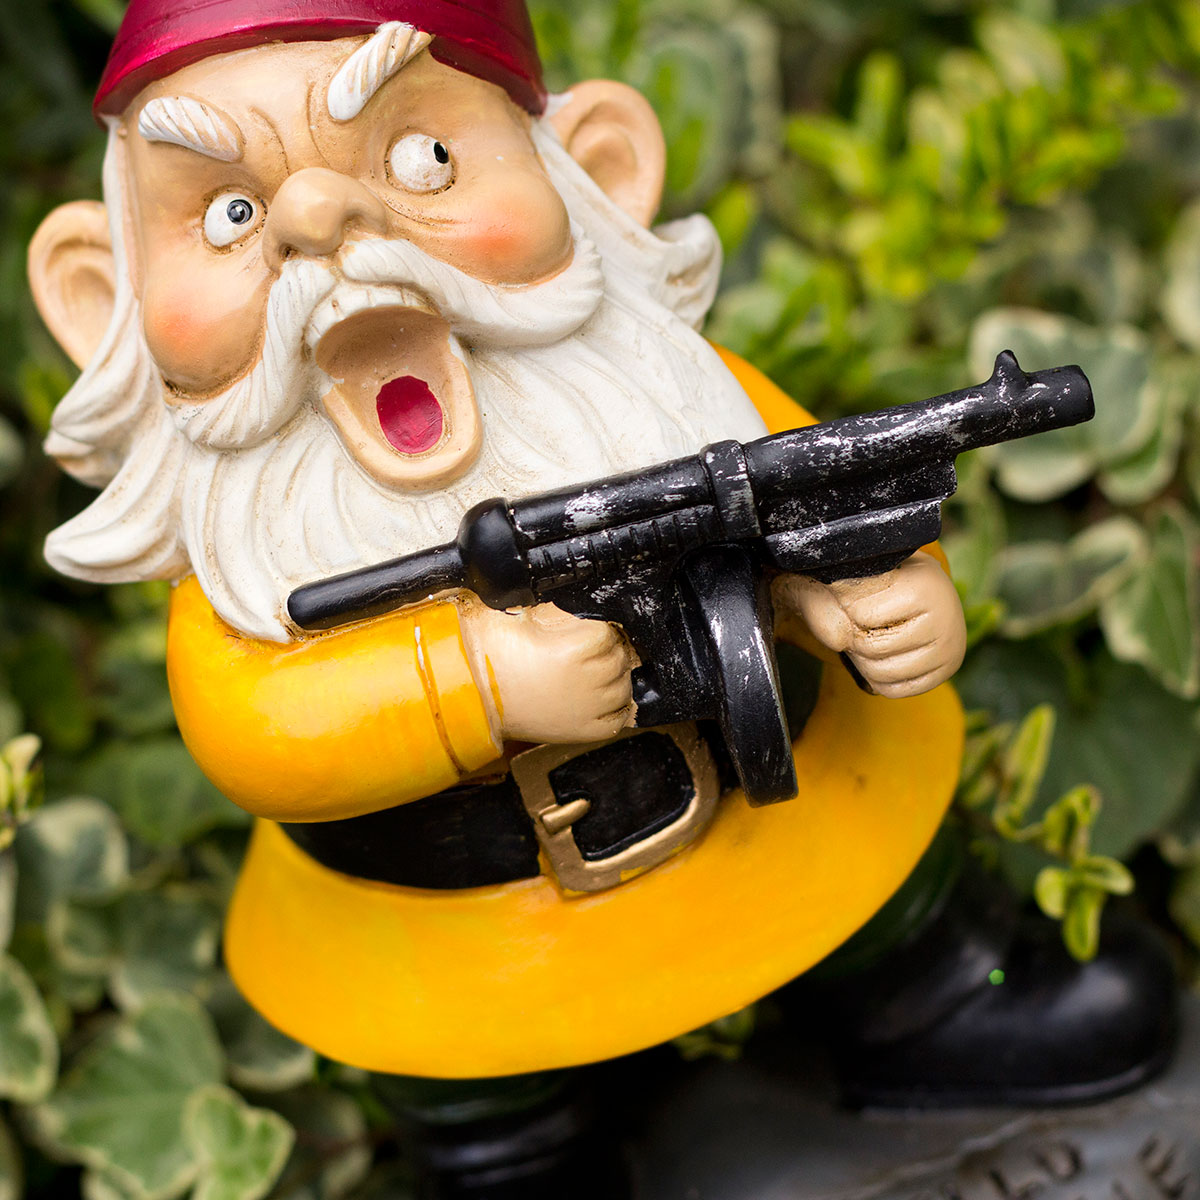 Angry Garden Gnome Gettingpersonal Co Uk